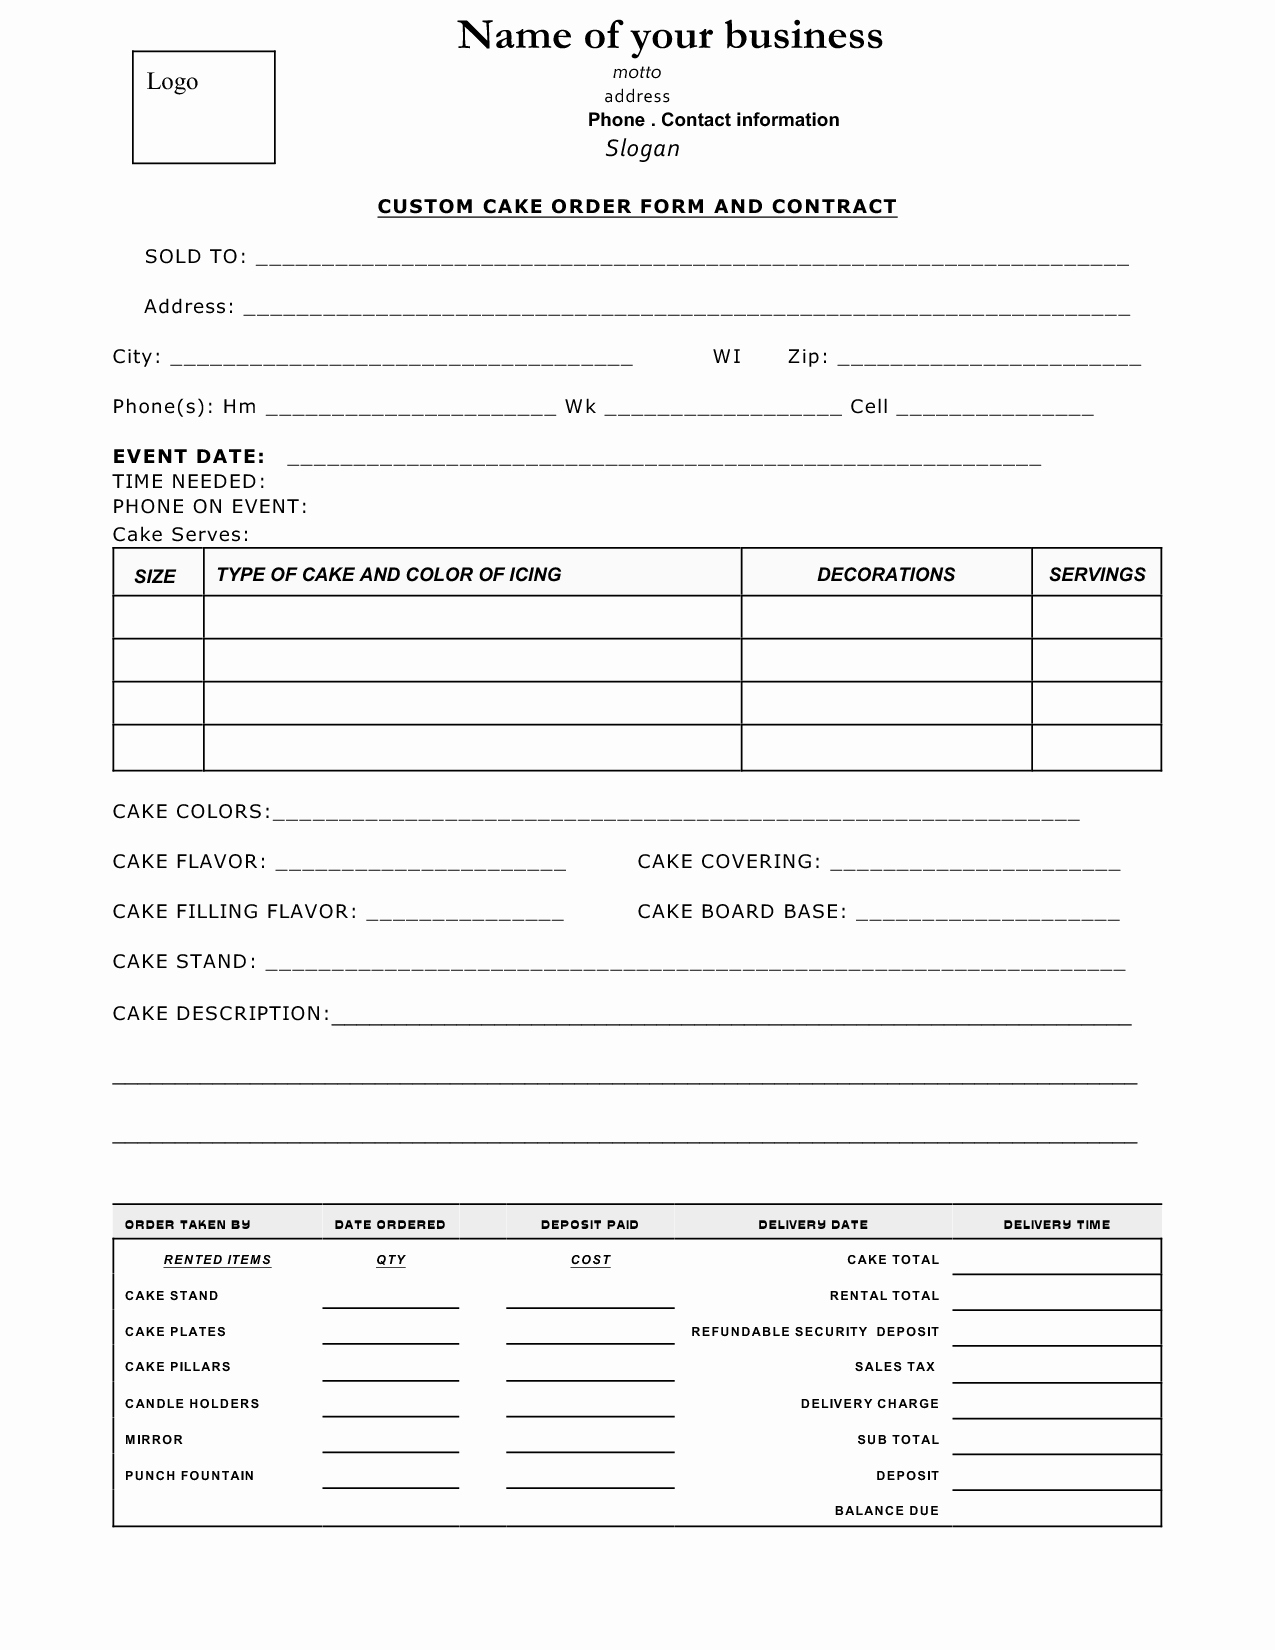 Cake order forms Templates Beautiful Cake Contract Sample Cakepins